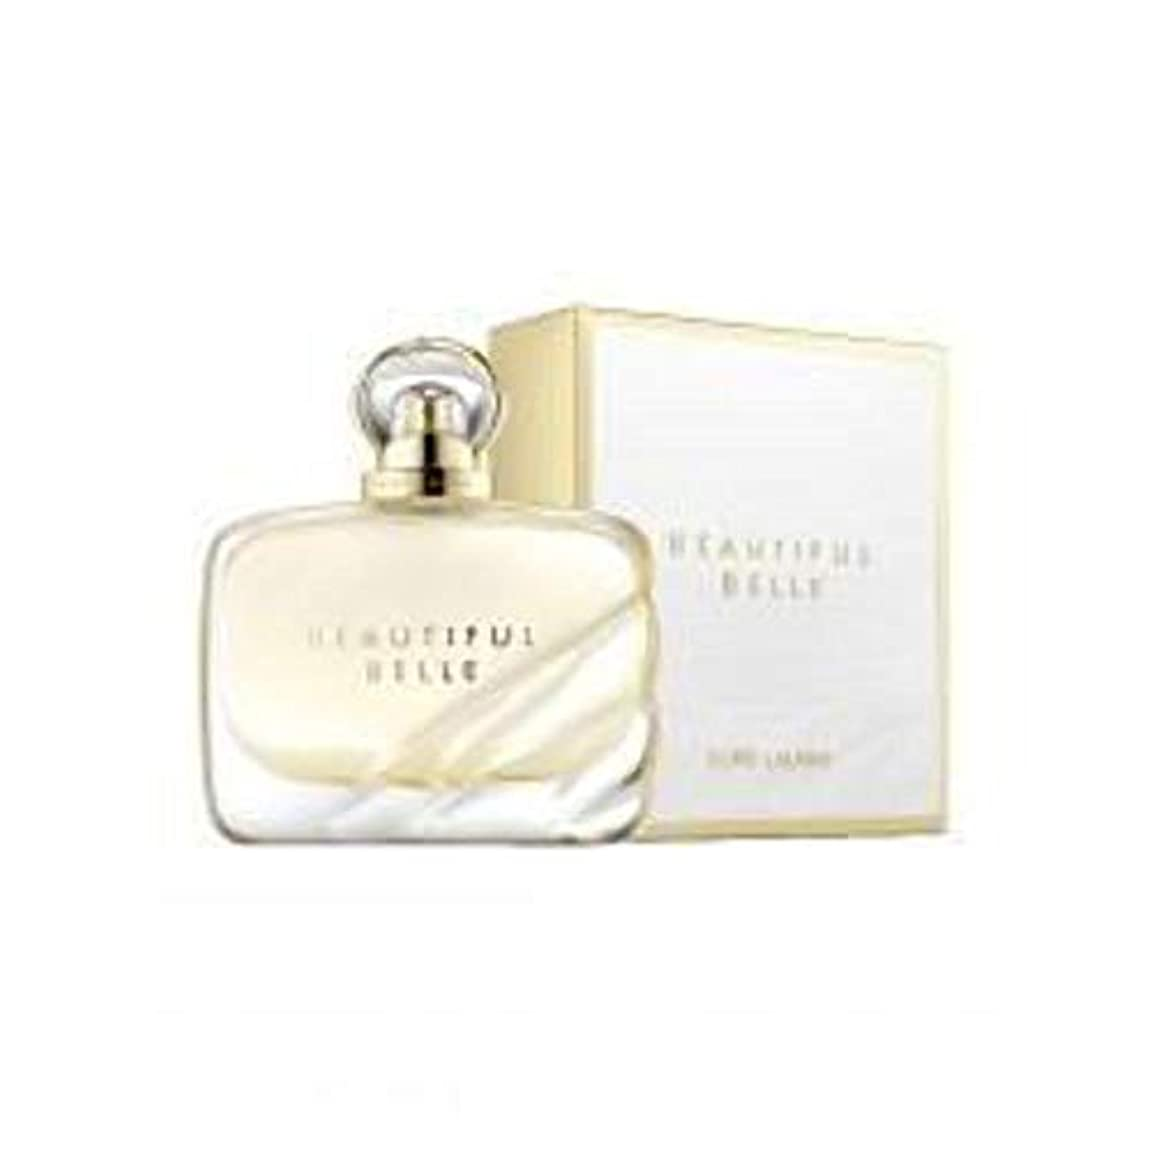 長椅子弱める倒錯Estee Lauder Beautiful Belle 50 ML Eau de Parfum